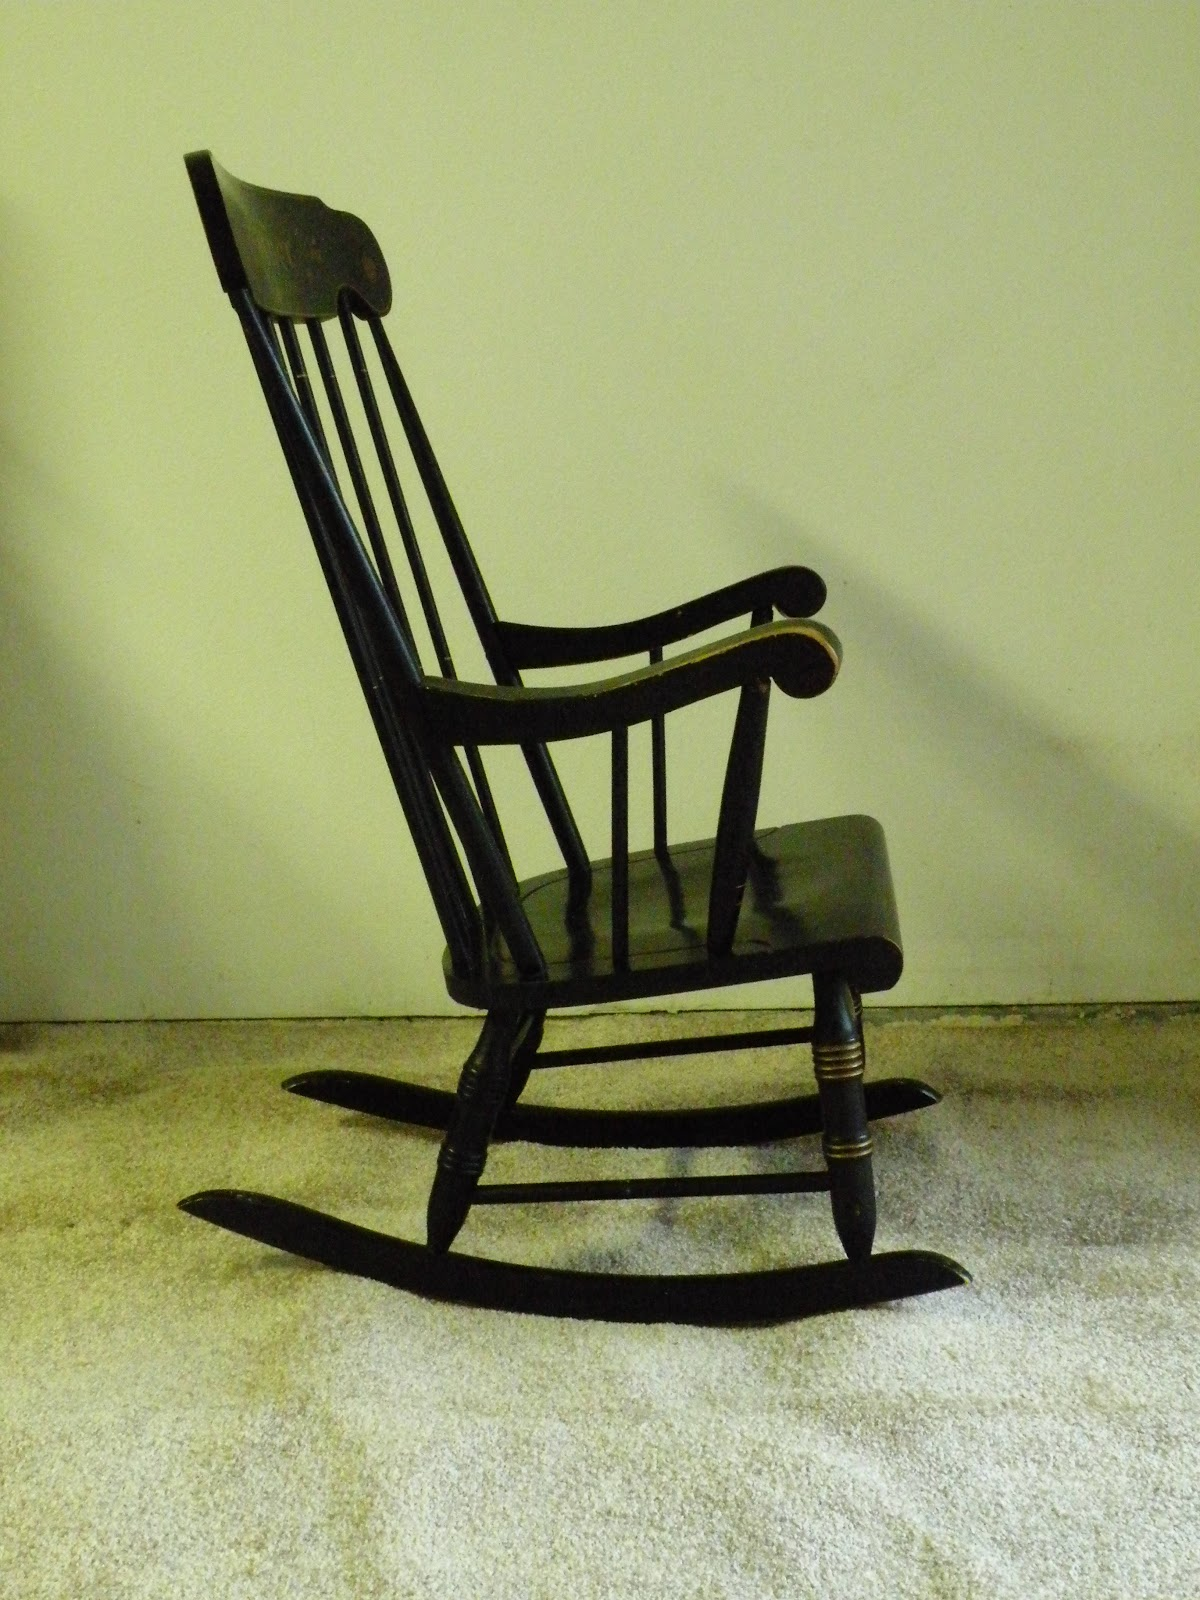 A reproduction antique rocking chair with the word